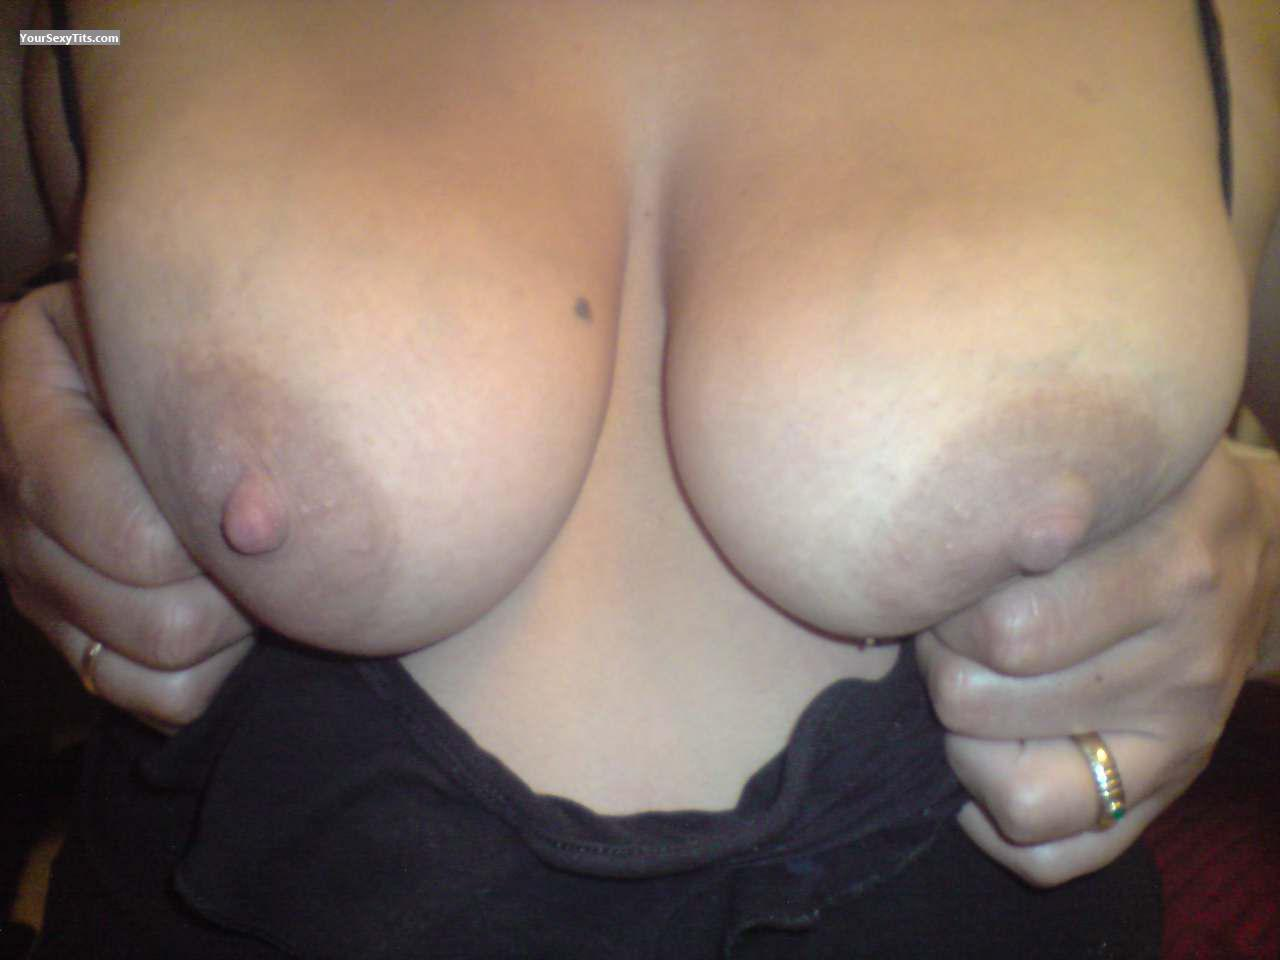 Tit Flash: Medium Tits - Charco from Spain